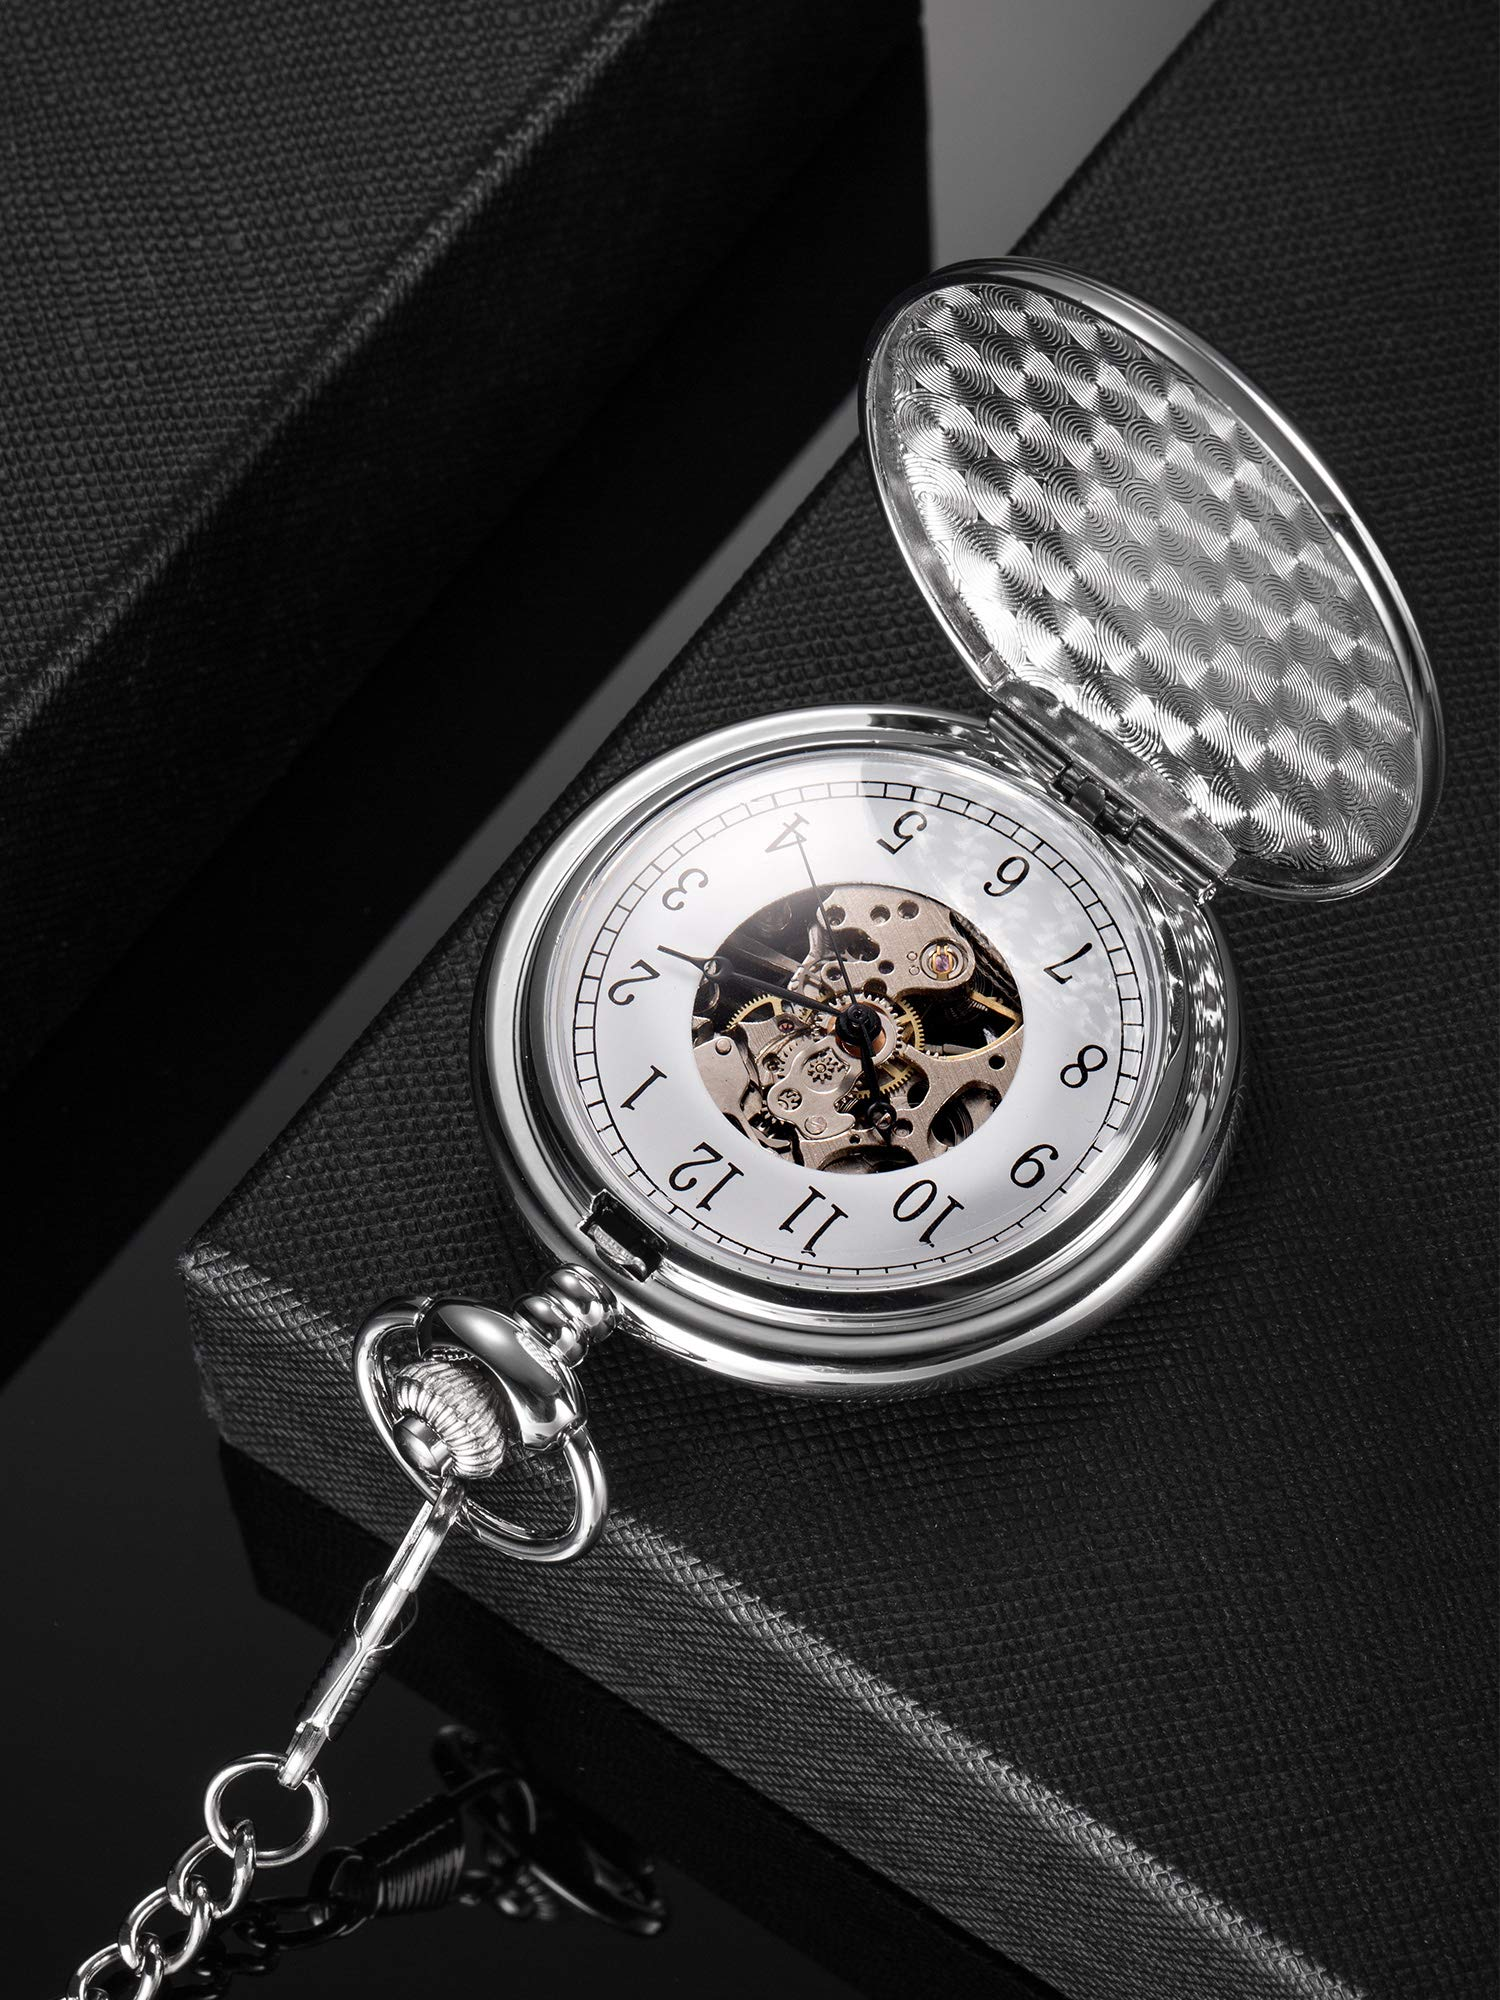 Hicarer Vintage Analog Mechanical Pocket Watch with Chain (Silver) by Hicarer (Image #3)